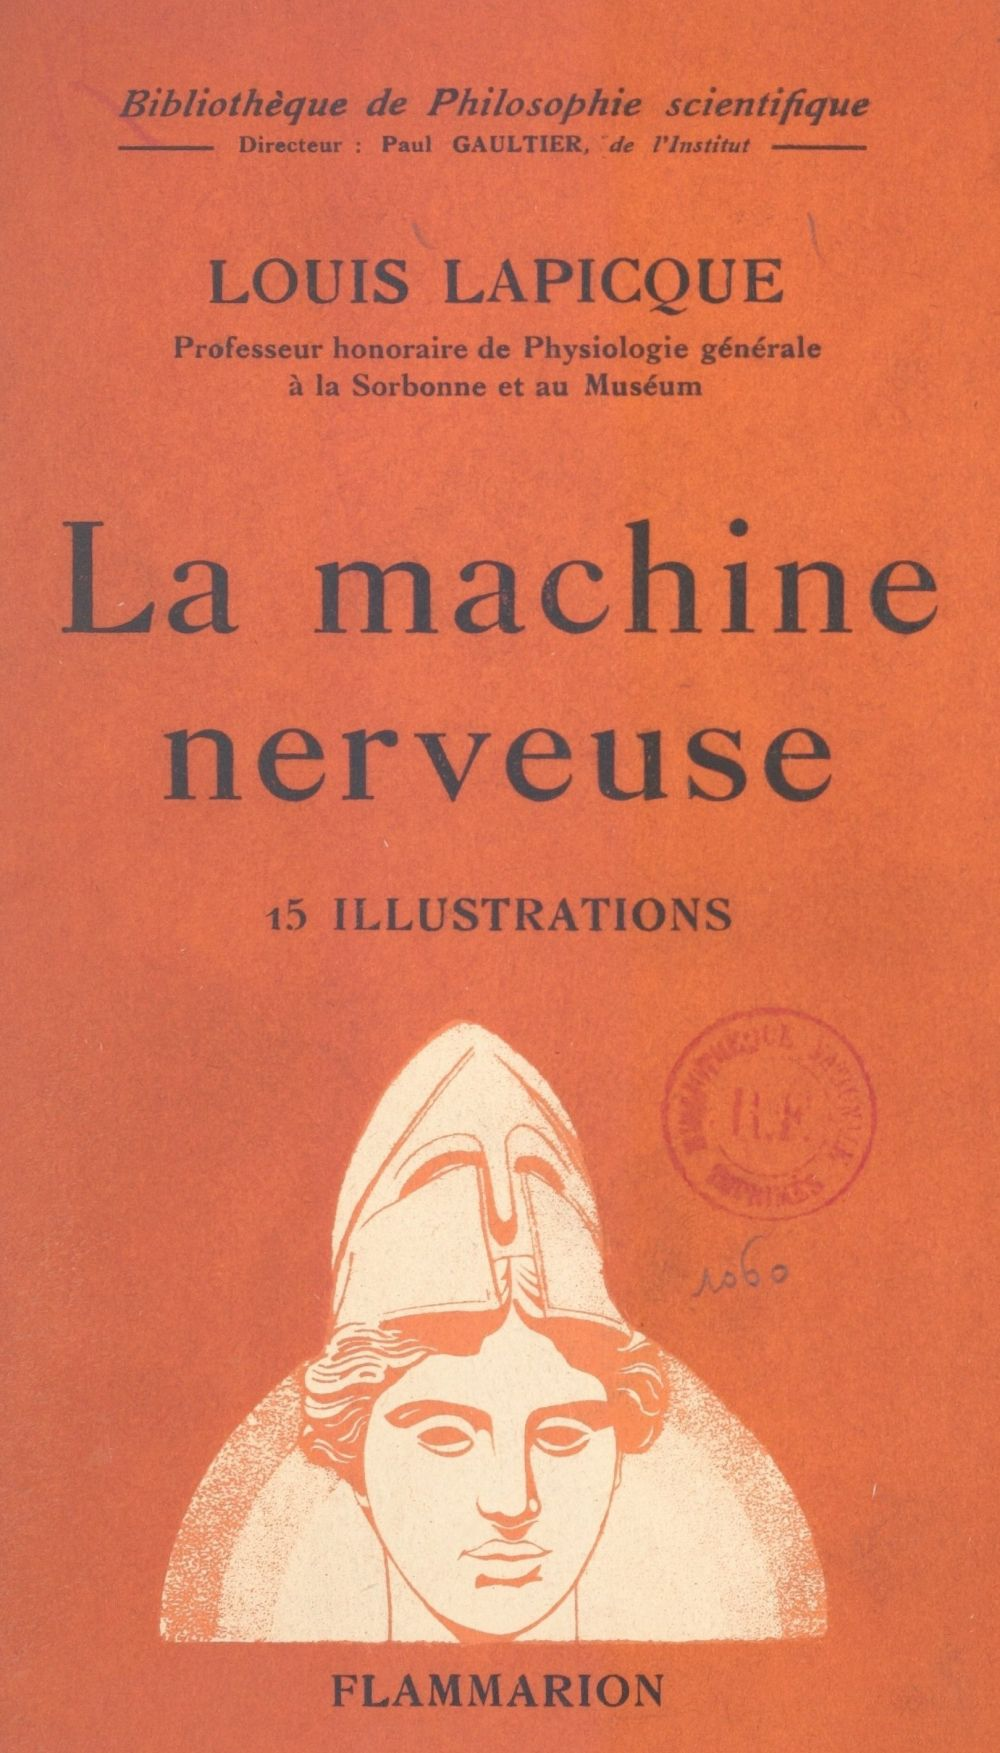 La machine nerveuse